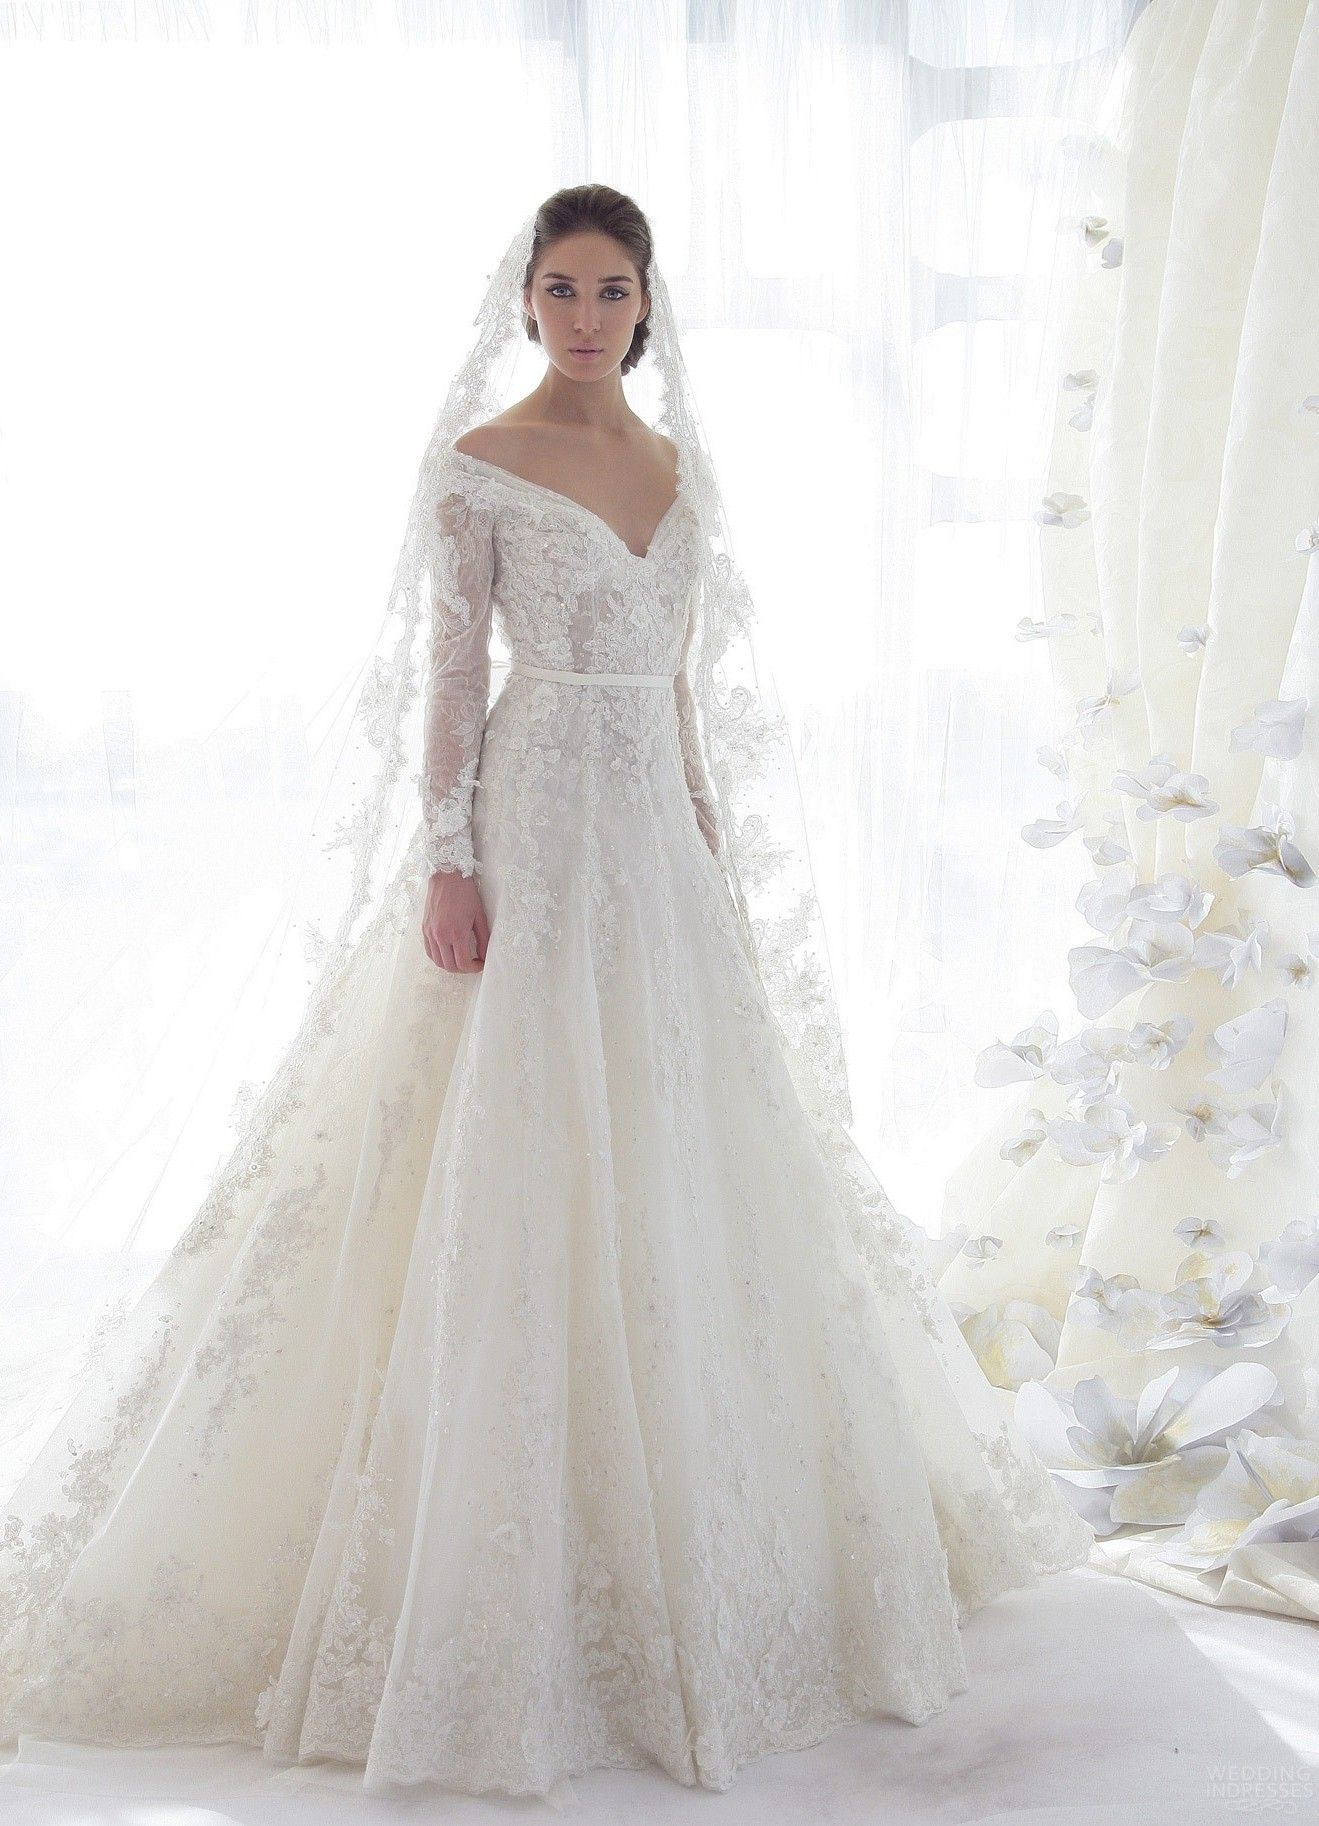 17 Best images about Wedding Dresses on Pinterest | Lace mermaid ...